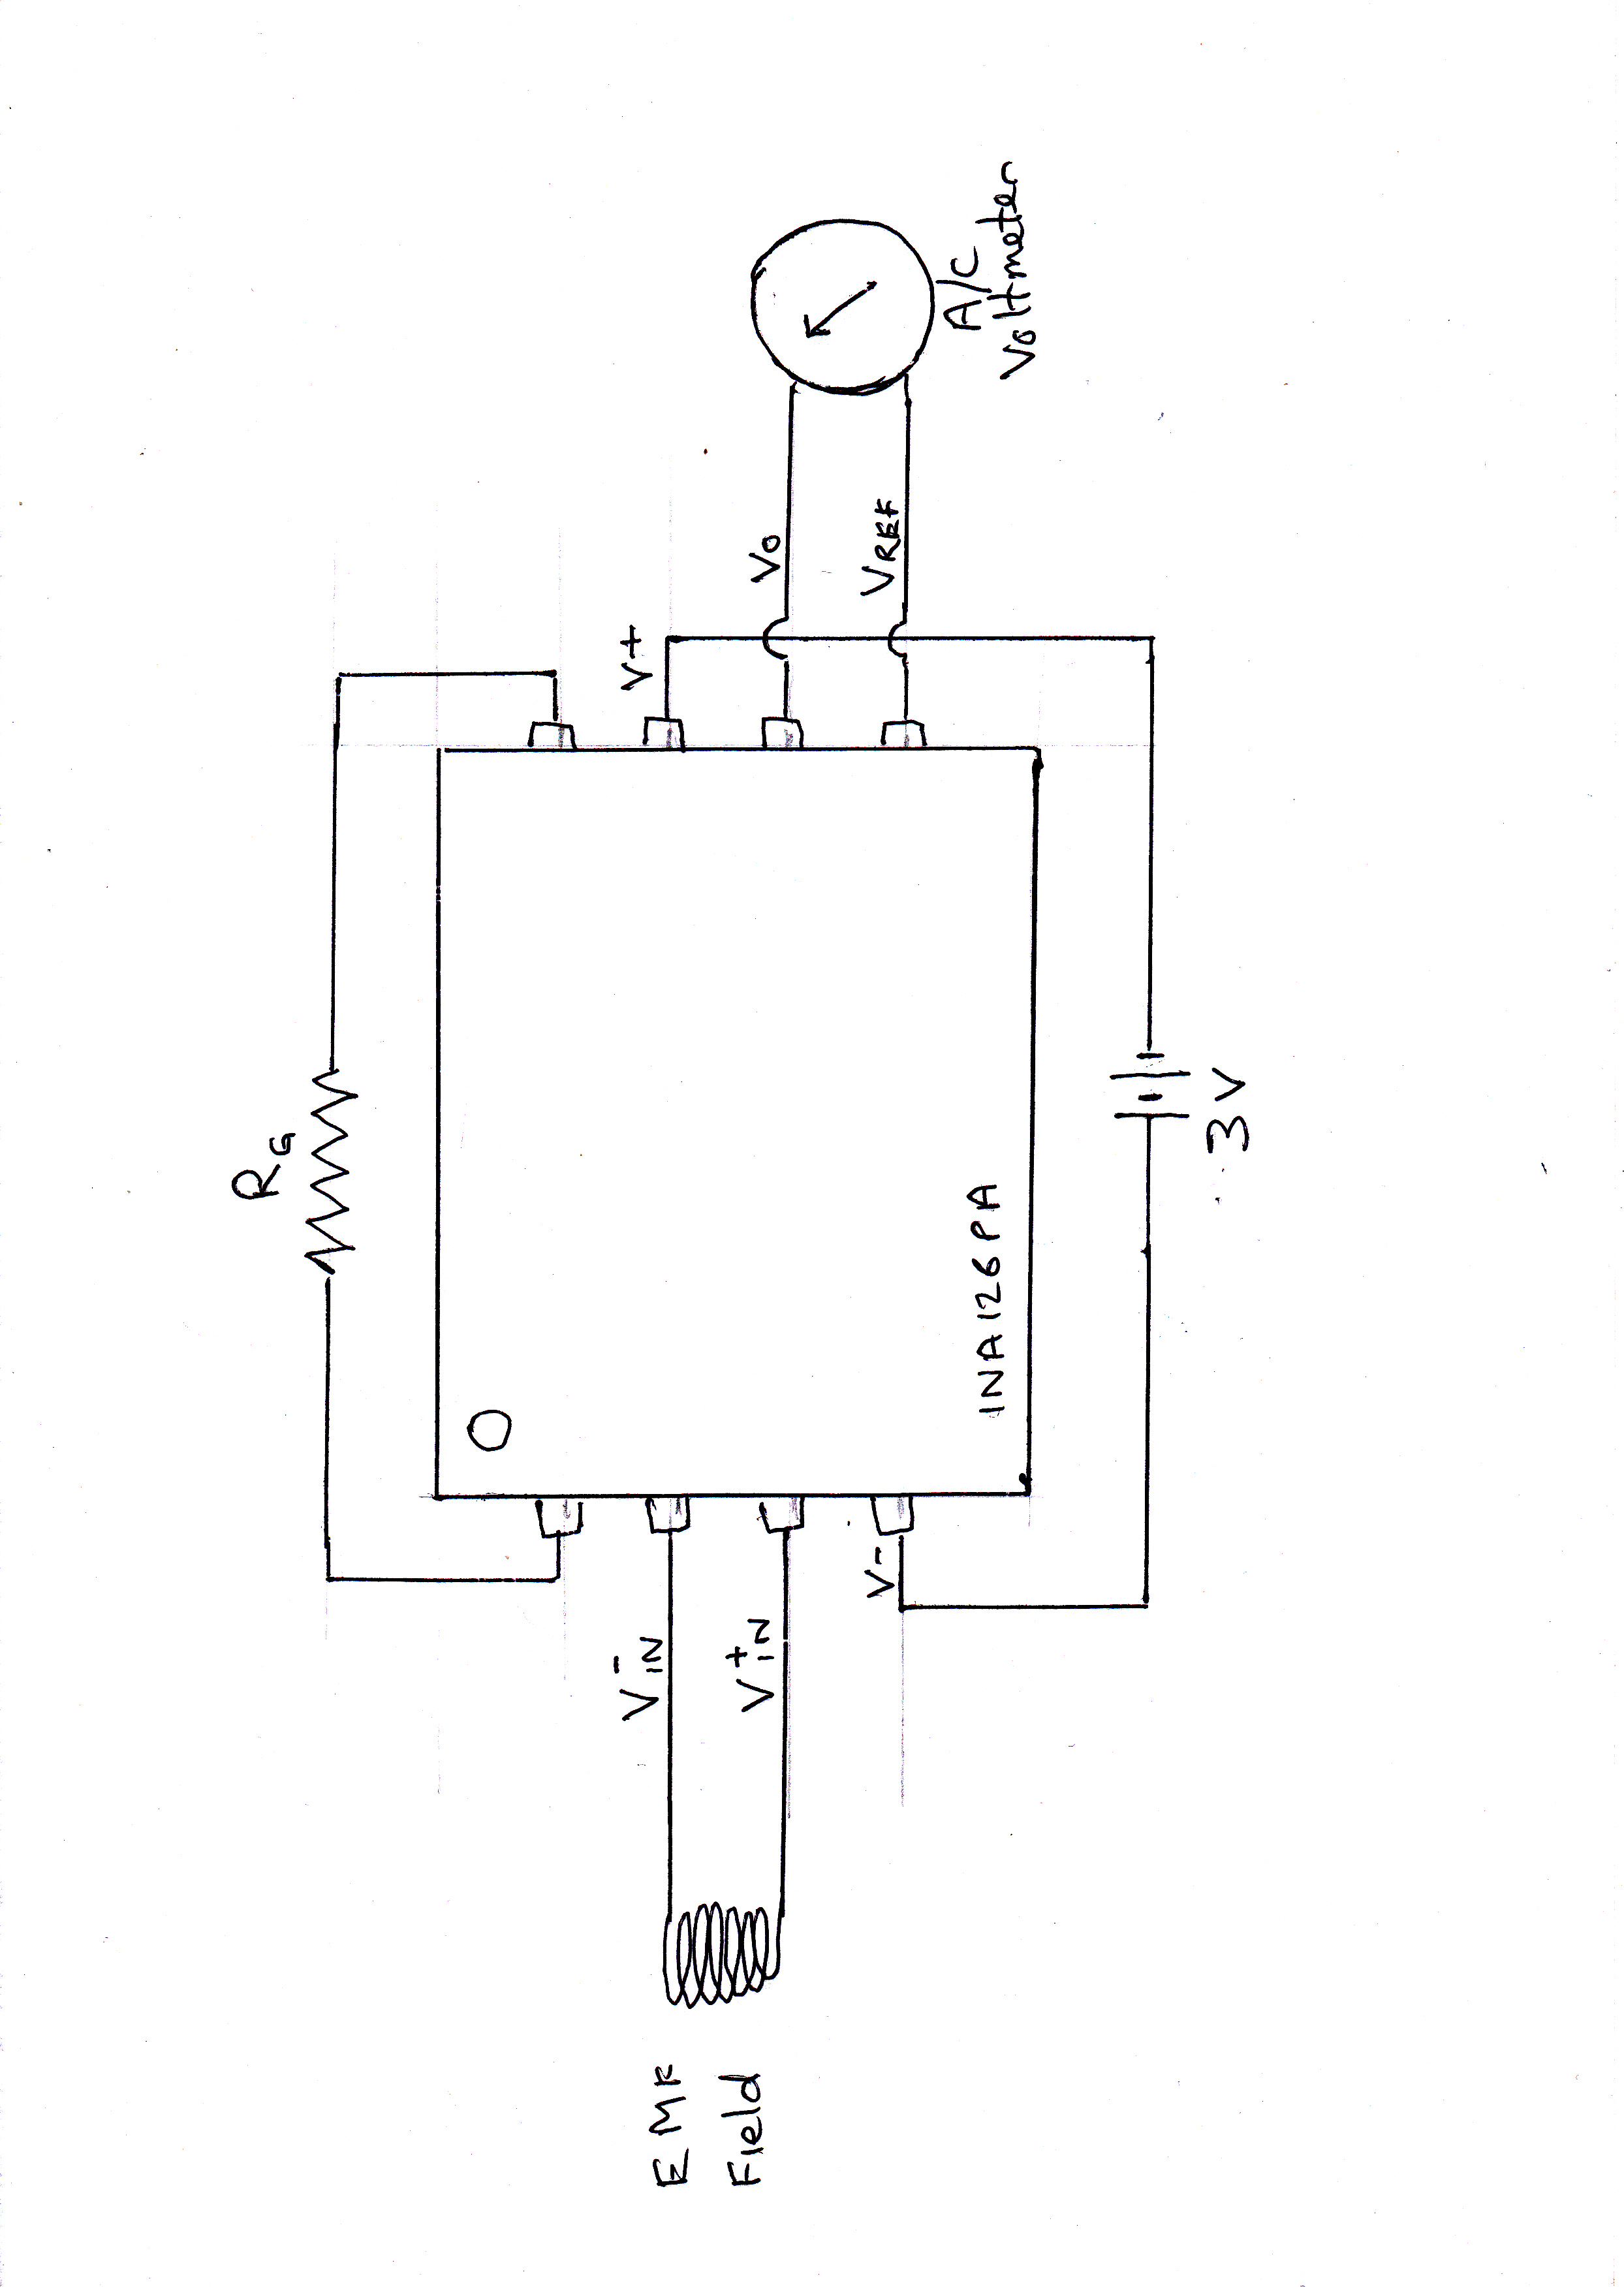 Resolved Ina126 Amplifying A Very Small C Voltage Amplifiers Two Opamps Instrumentation Amplifiercircuit Diagram World Alan